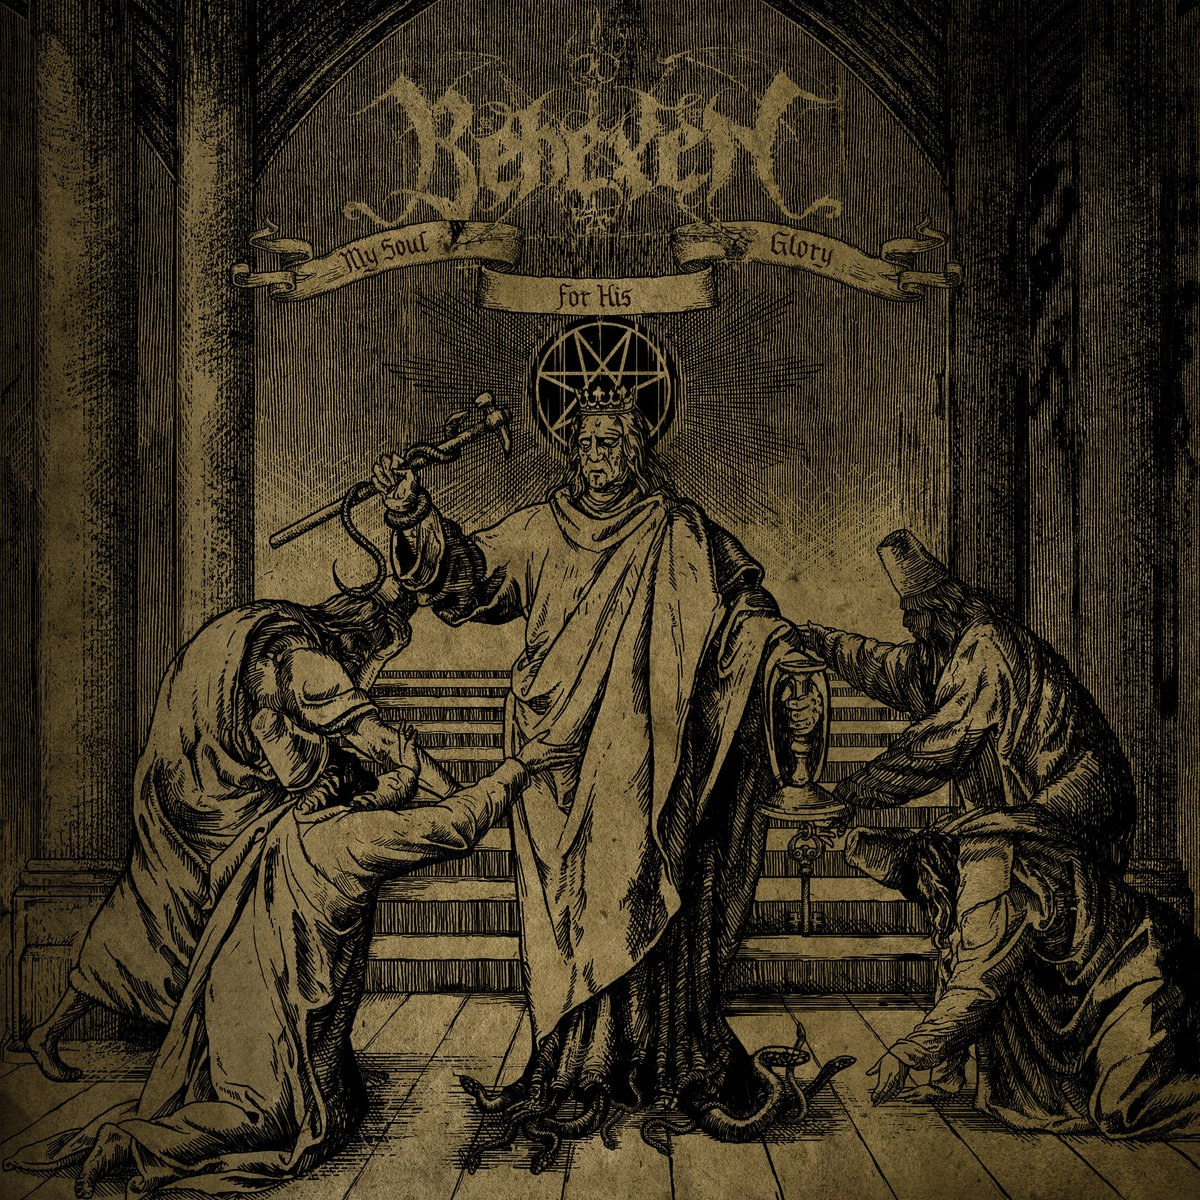 Review for Behexen - My Soul for His Glory